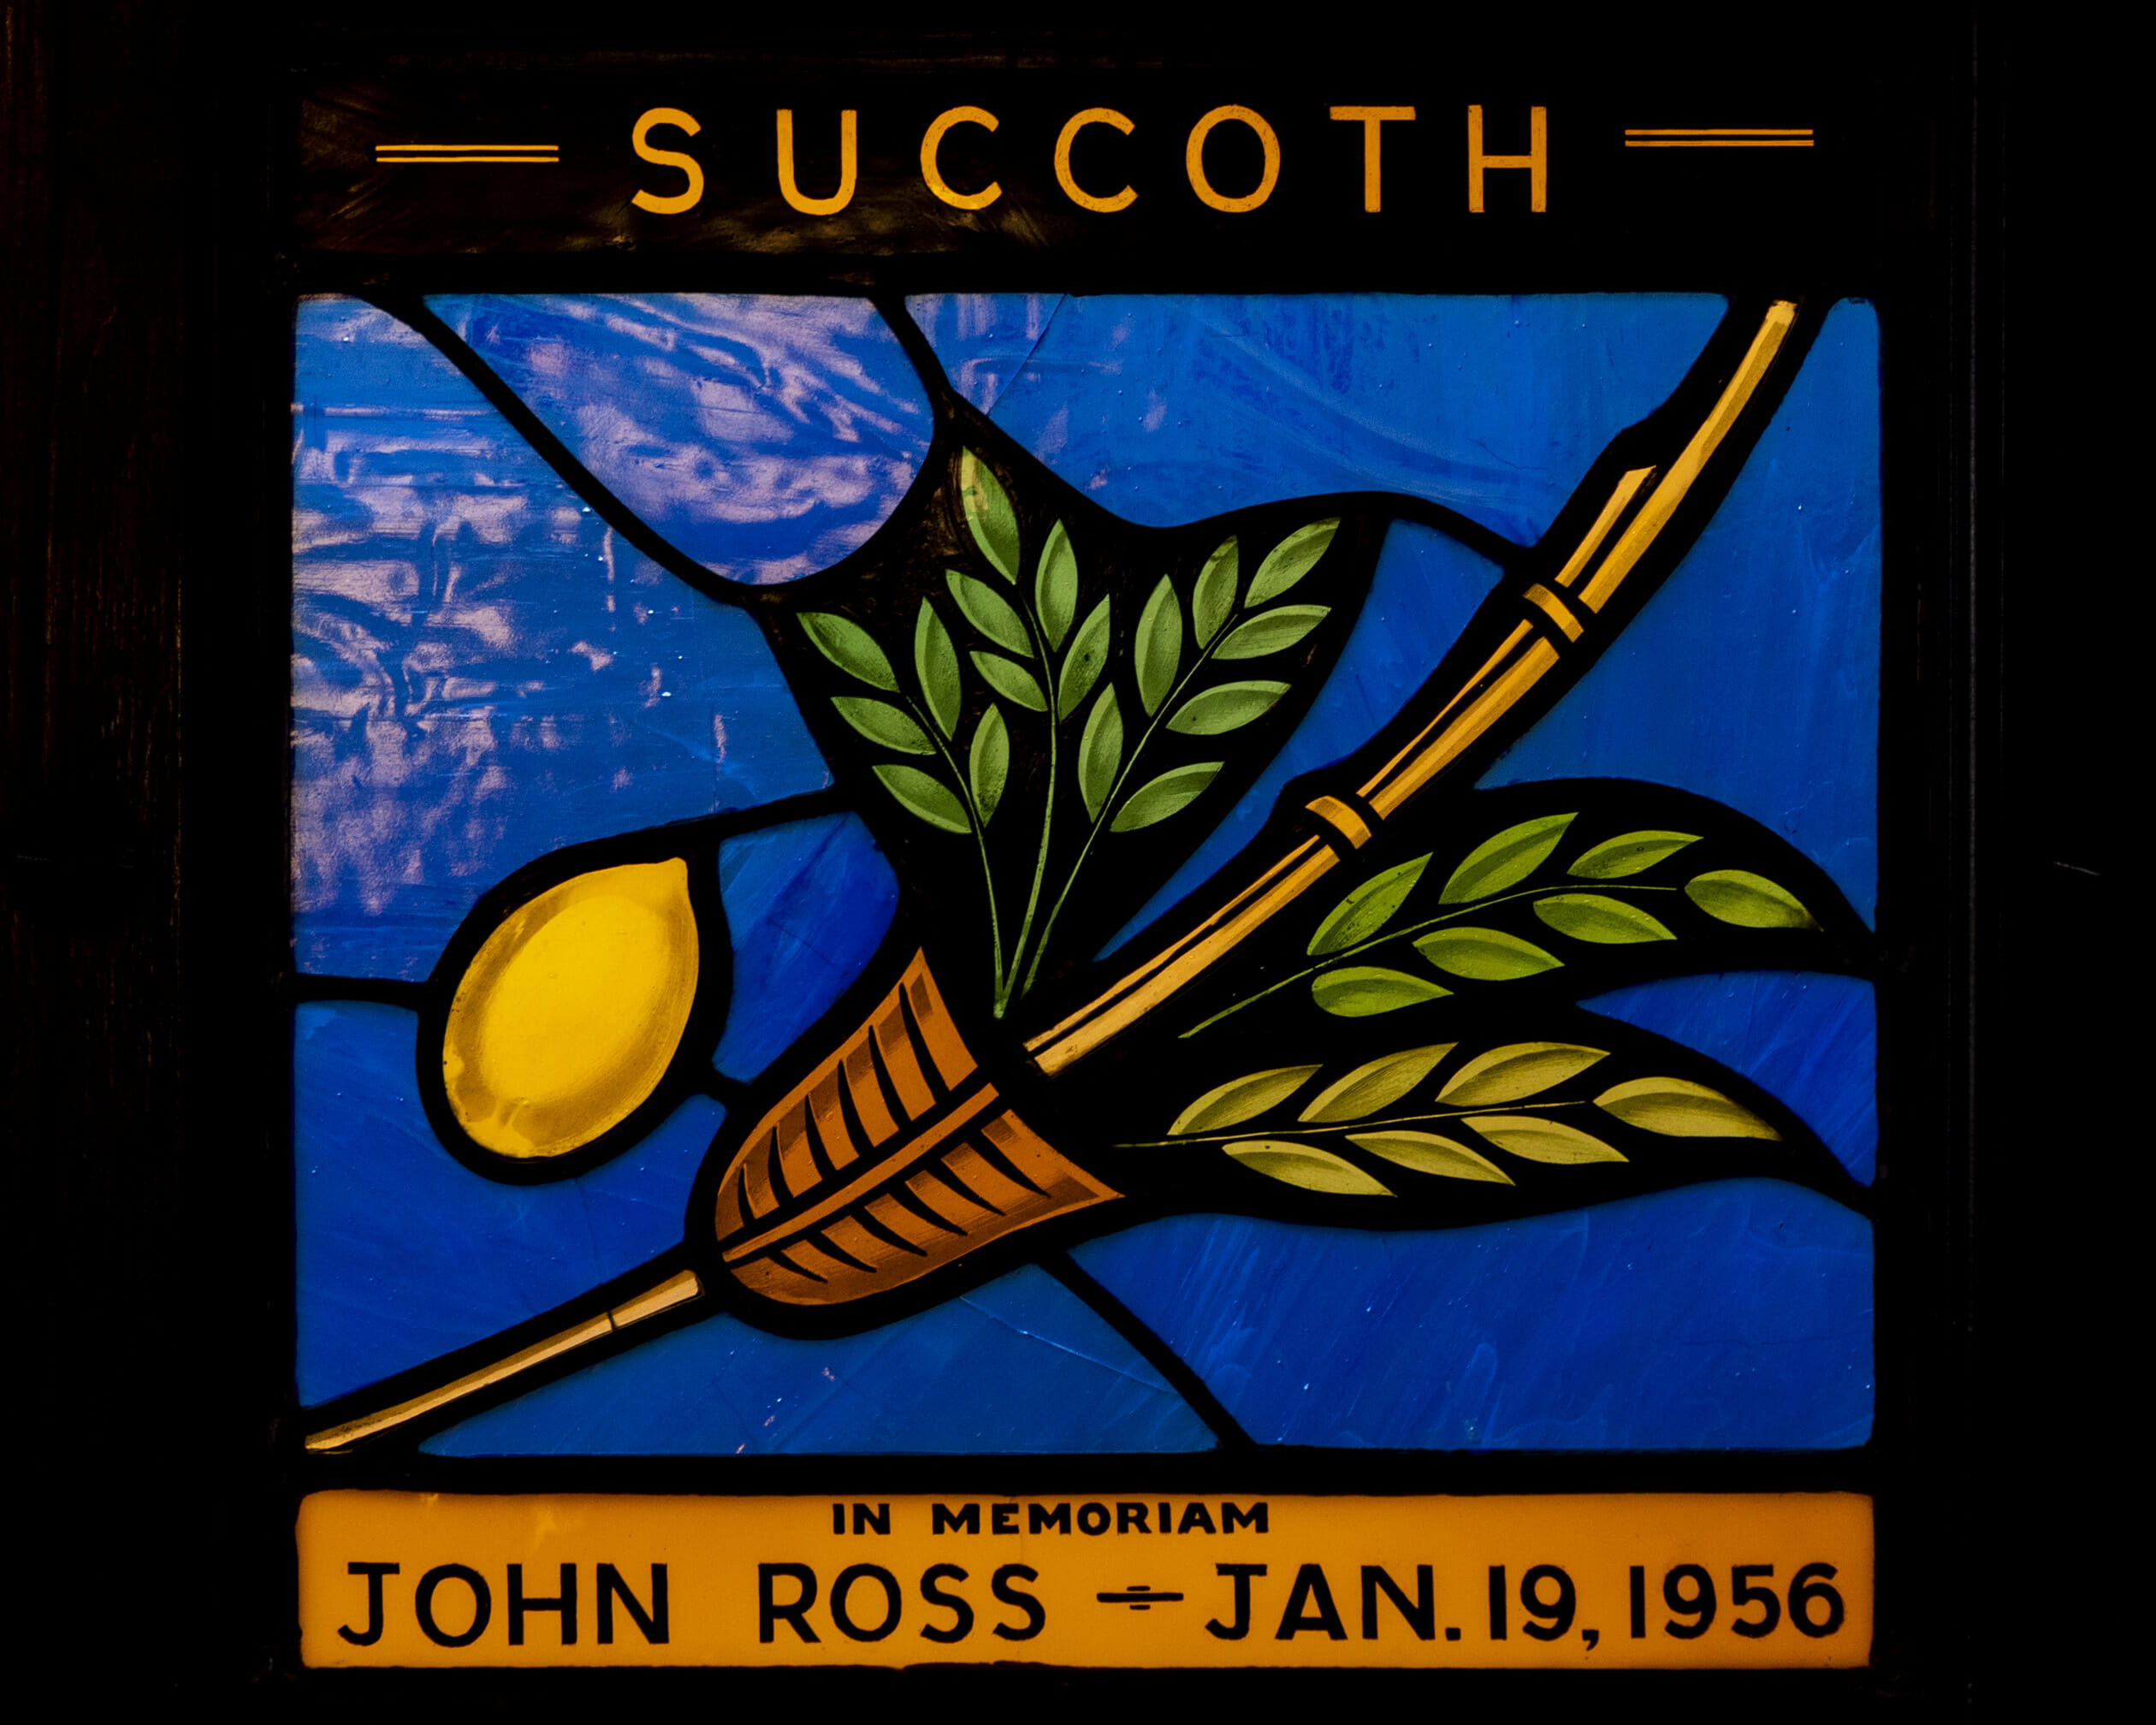 succoth - in memoriam john ross